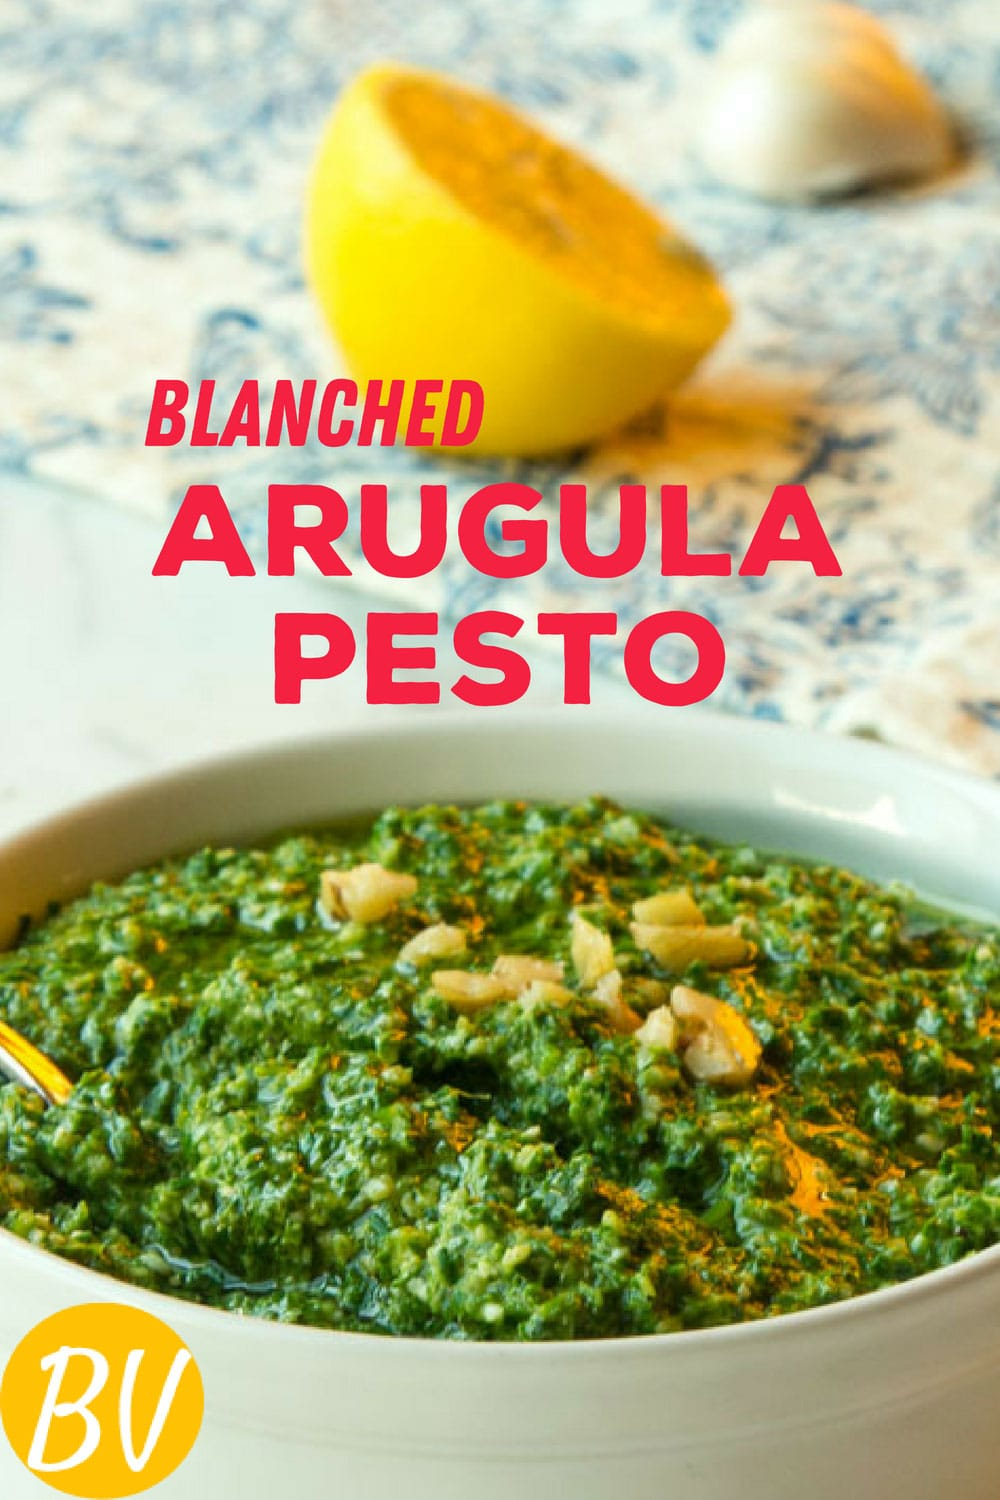 Arugula Pesto made with blanched arugula results in mellower flavor, succulent texture, and bright green color with minimal use of oil. It\'s wonderful with pasta, toast and eggs, sandwiches, boiled potatoes, or as a base for a pesto pizza. #pesto #arugula #spread #condiment #pasta #vegetarian #parmesan #greens #toast